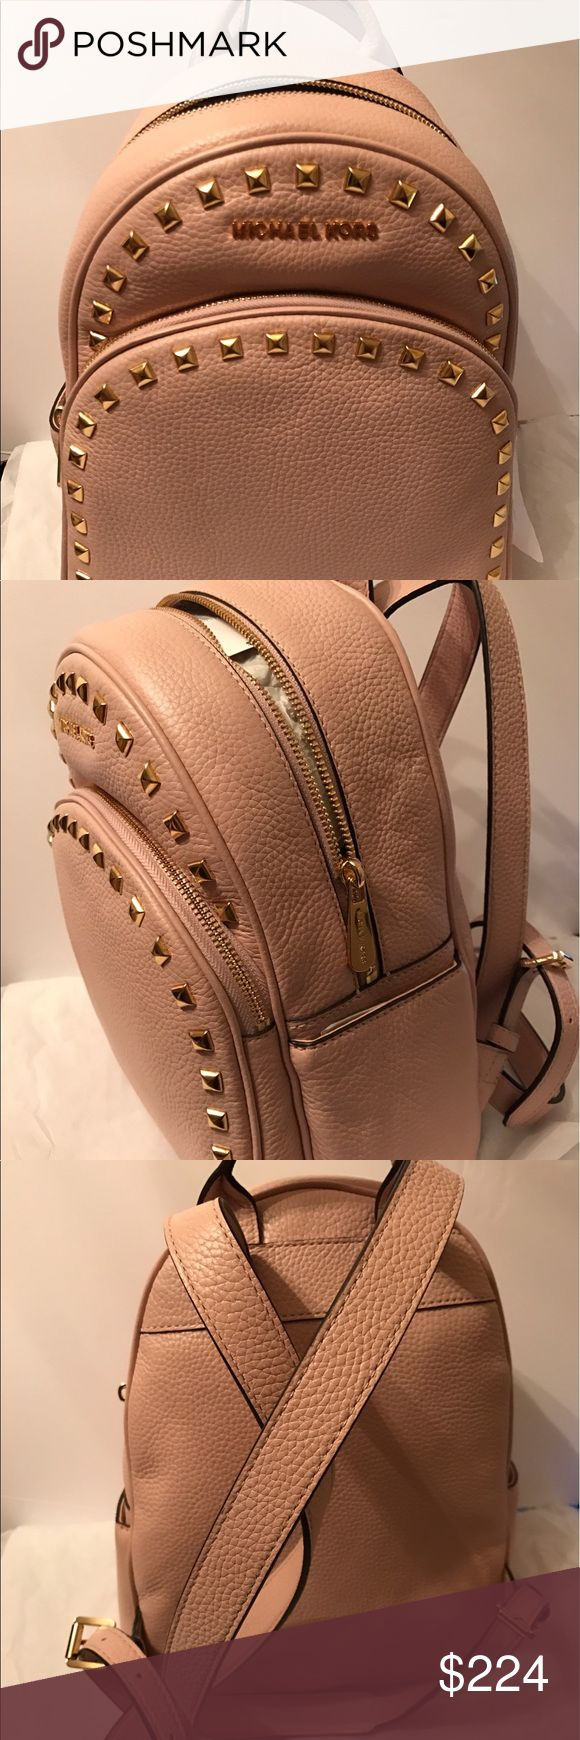 Michael Kors Frame Out Stud Leather Backpack - NEW Real leather! Soft light pink with gold studs. Brand NEW w Tag!  100% AUTHENTIC!  Original price : $398 + tax!!!  A must have  Medium size - not too big where it looks like a school book back! And not too small where you can't carry anything inside. The PREFECT size!!   Super cute, incredibly soft real leather, very light weight, lots of compartments inside, two side pocket outside, and beautifully designed!! Has adjustable straps too…